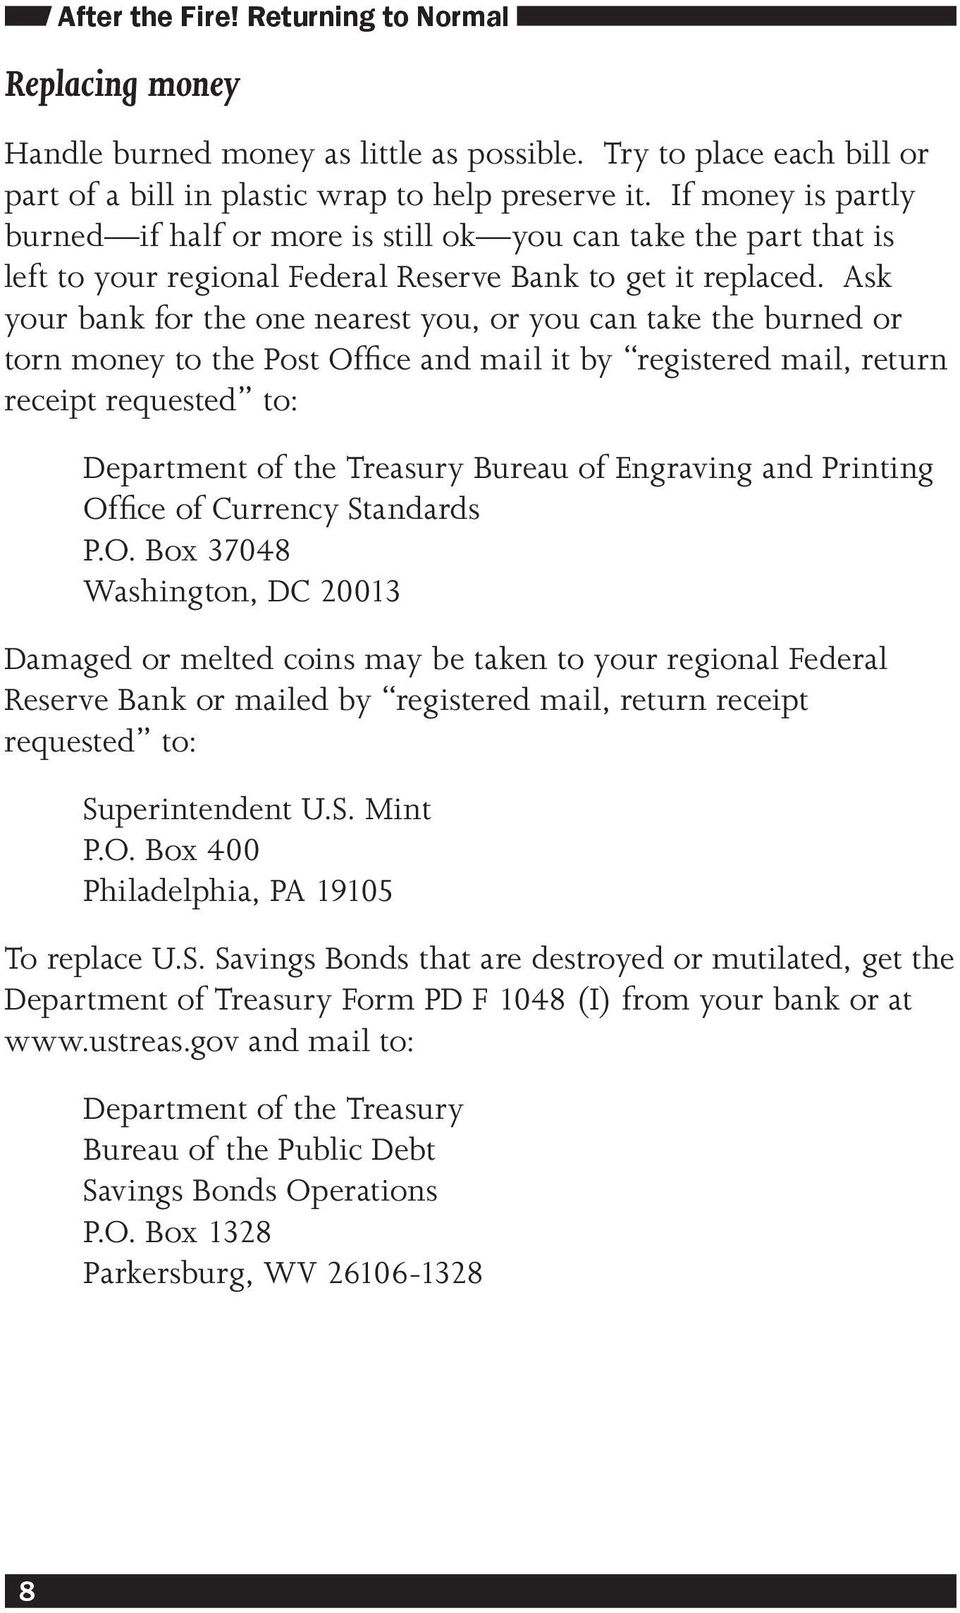 Ask your bank for the one nearest you, or you can take the burned or torn money to the Post Office and mail it by registered mail, return receipt requested to: Department of the Treasury Bureau of